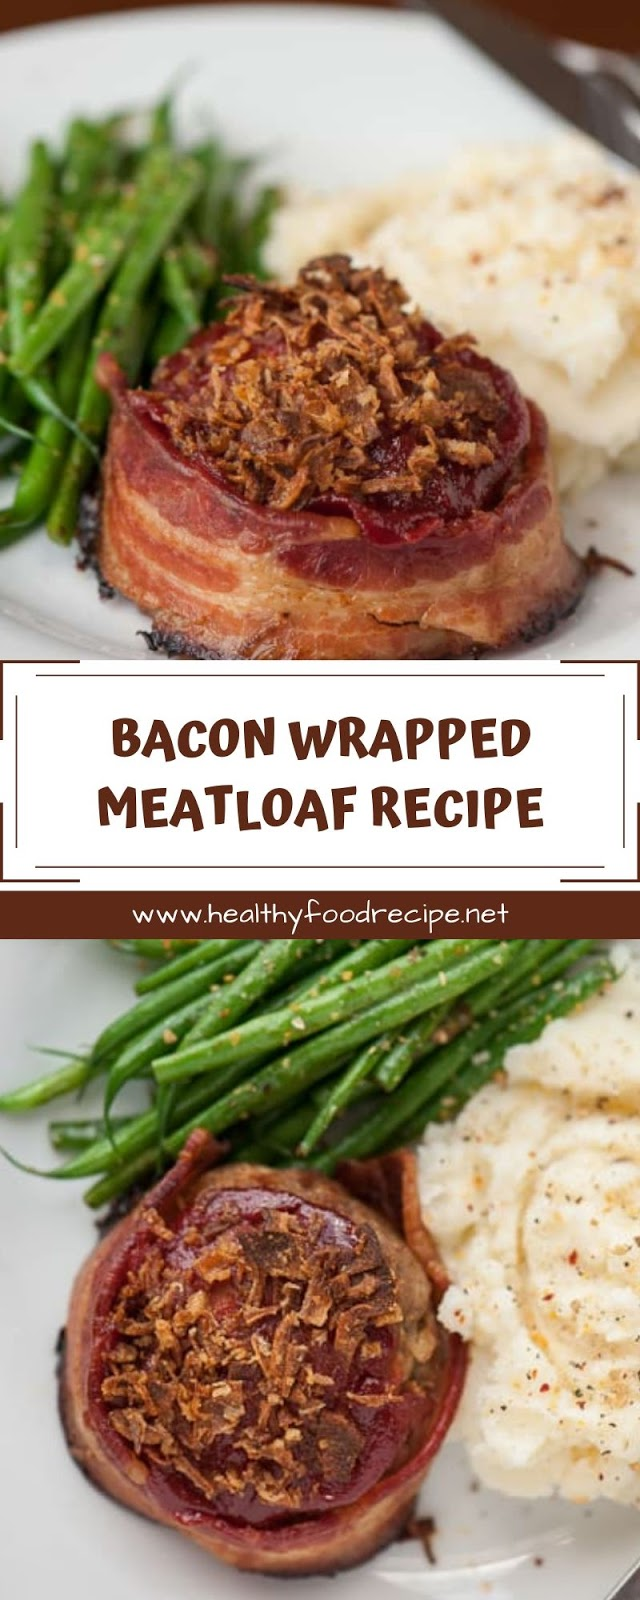 BACON WRAPPED MEATLOAF RECIPE